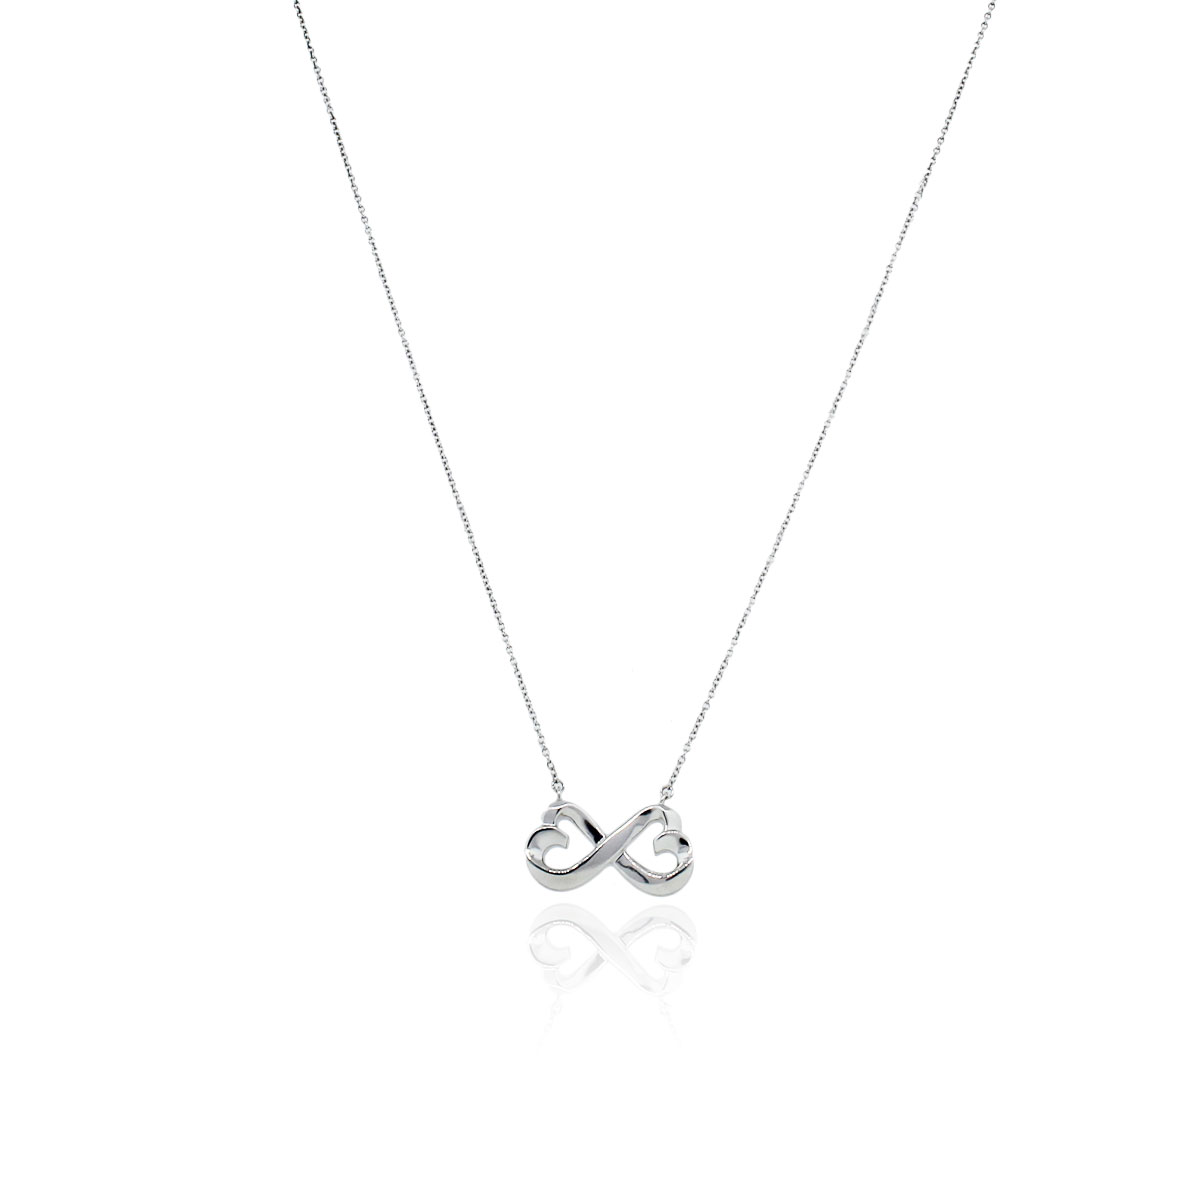 Tiffany and co necklace images for Where is tiffany and co located